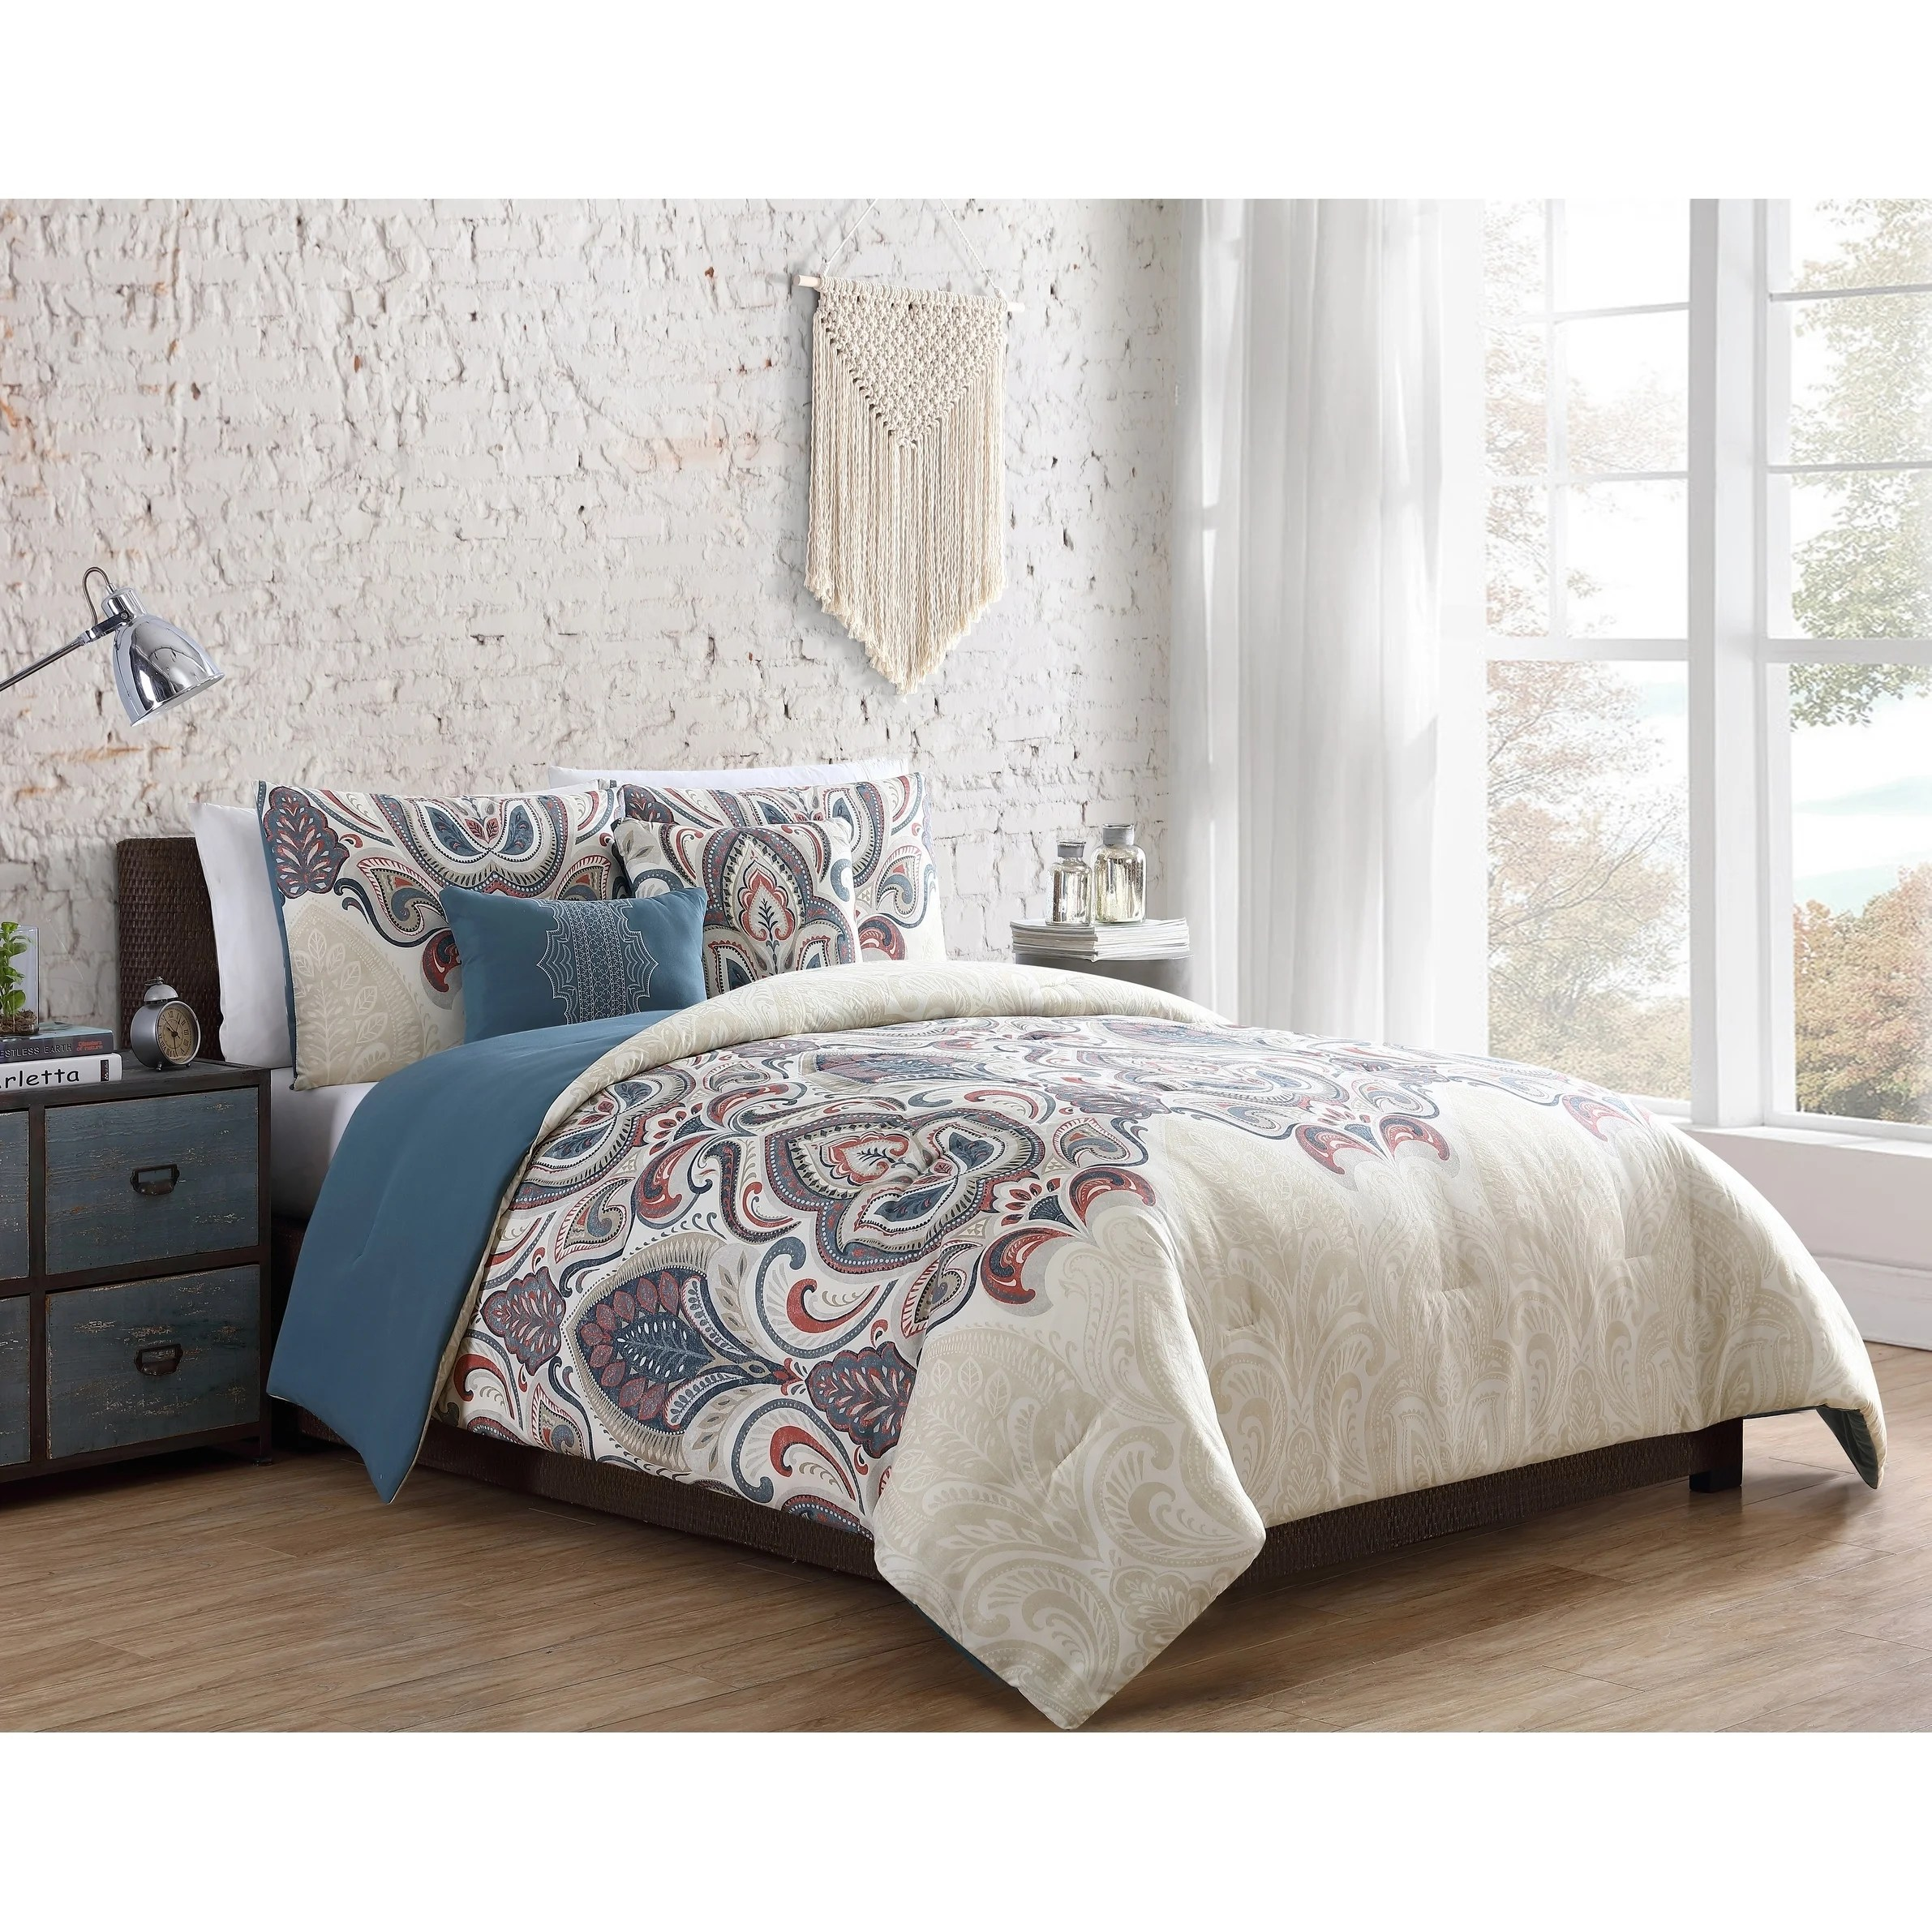 Damask Duvet Vcny Home Zelda Damask Duvet Set